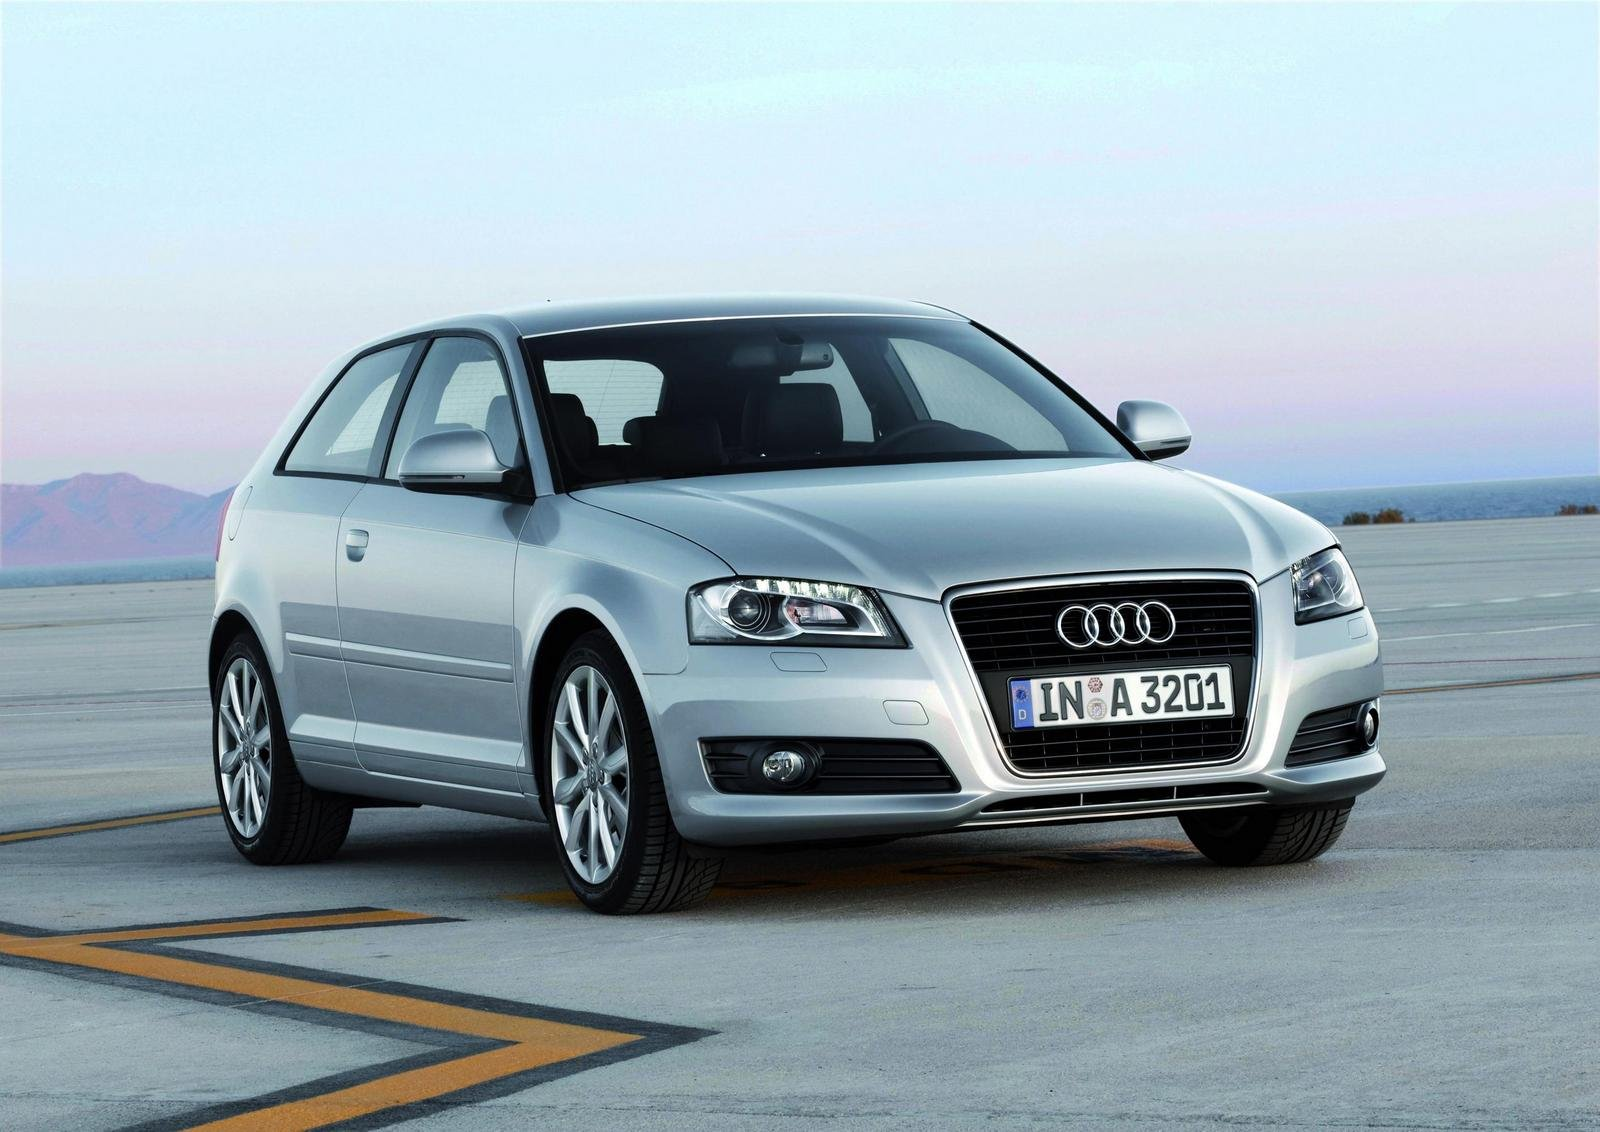 2009 audi a3 picture 250322 car review top speed. Black Bedroom Furniture Sets. Home Design Ideas